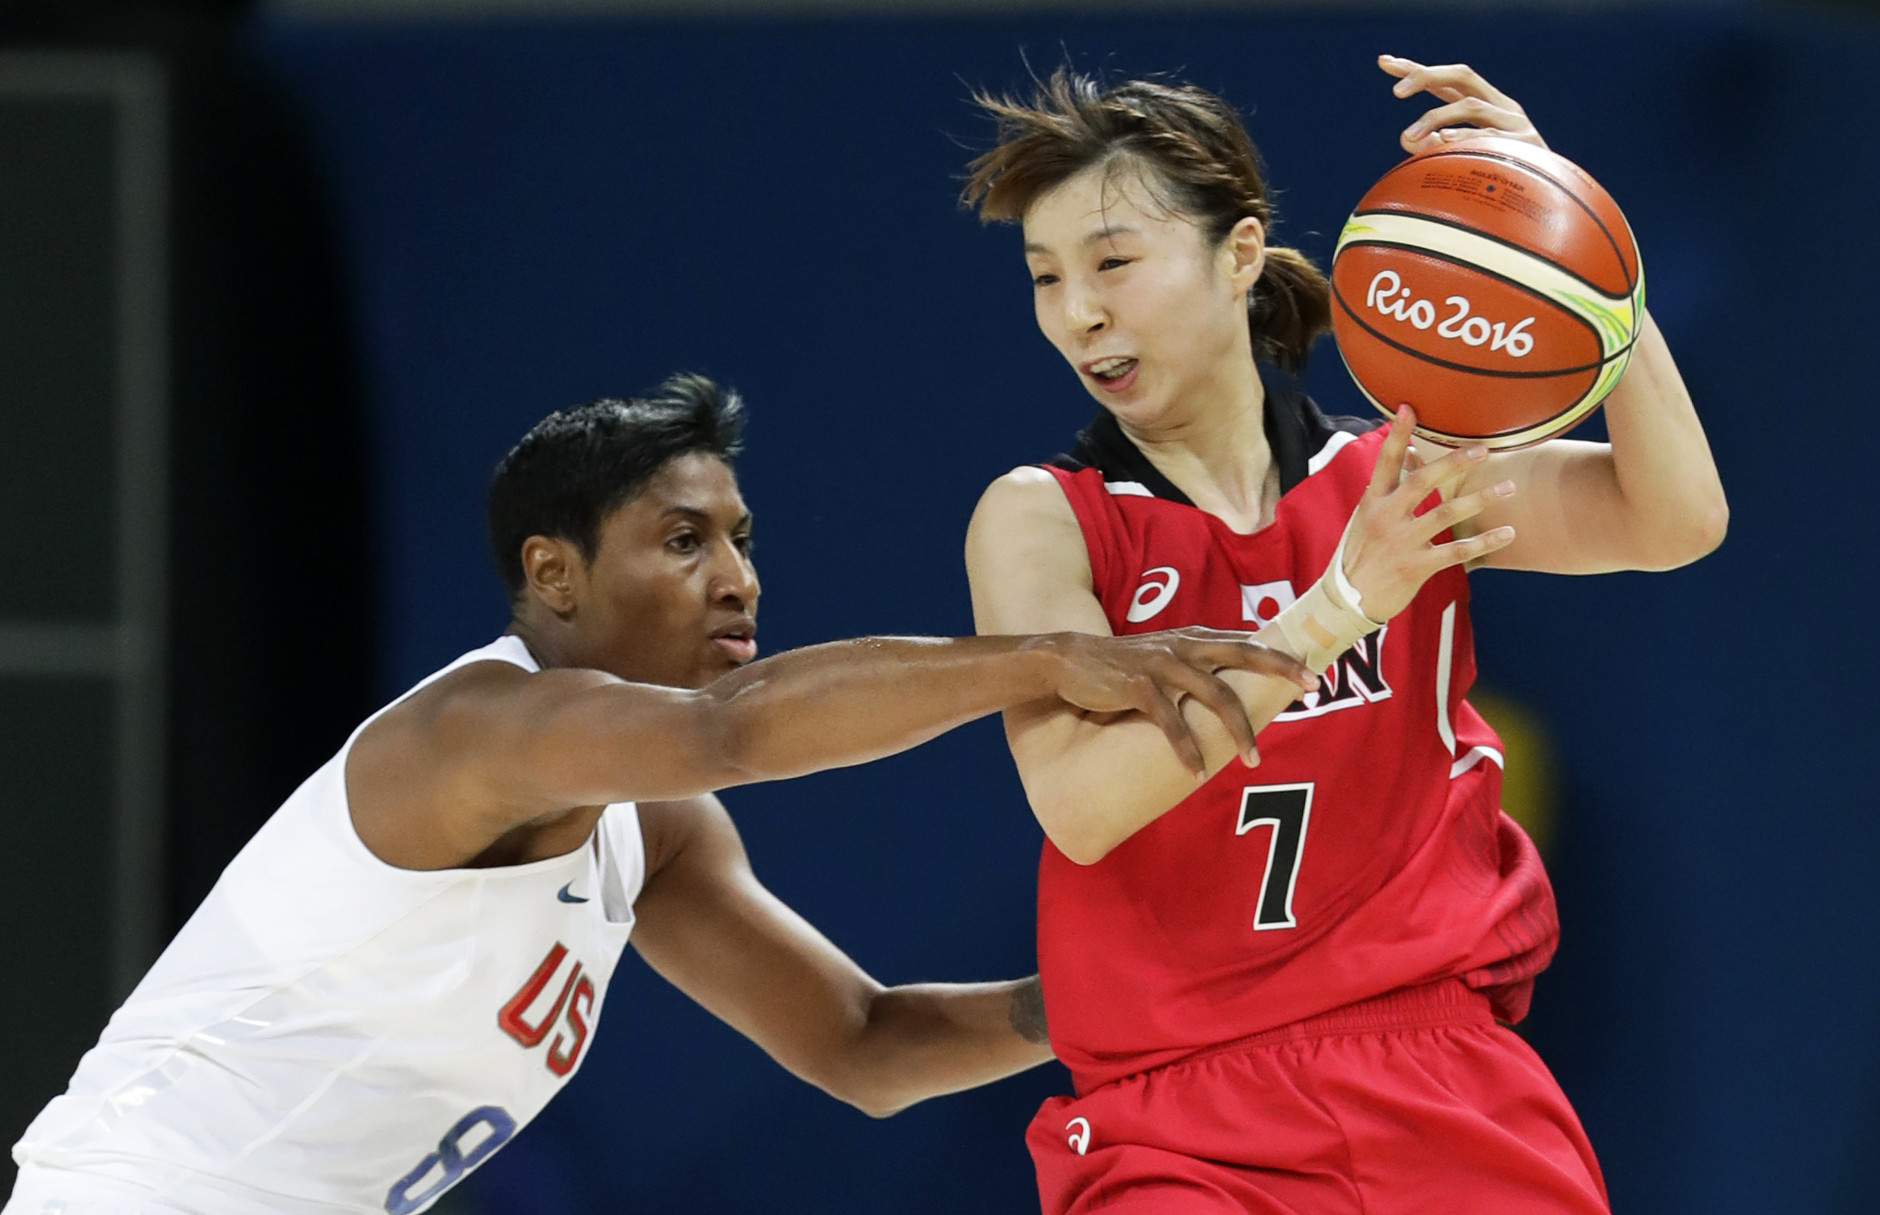 United States' Angel McCoughtry, left, tries to steal the ball from Japan's Mika Kurihara, right, during a quarterfinal round basketball game at the 2016 Summer Olympics in Rio de Janeiro, Brazil, Tuesday, Aug. 16, 2016. (AP Photo/Charlie Neibergall)